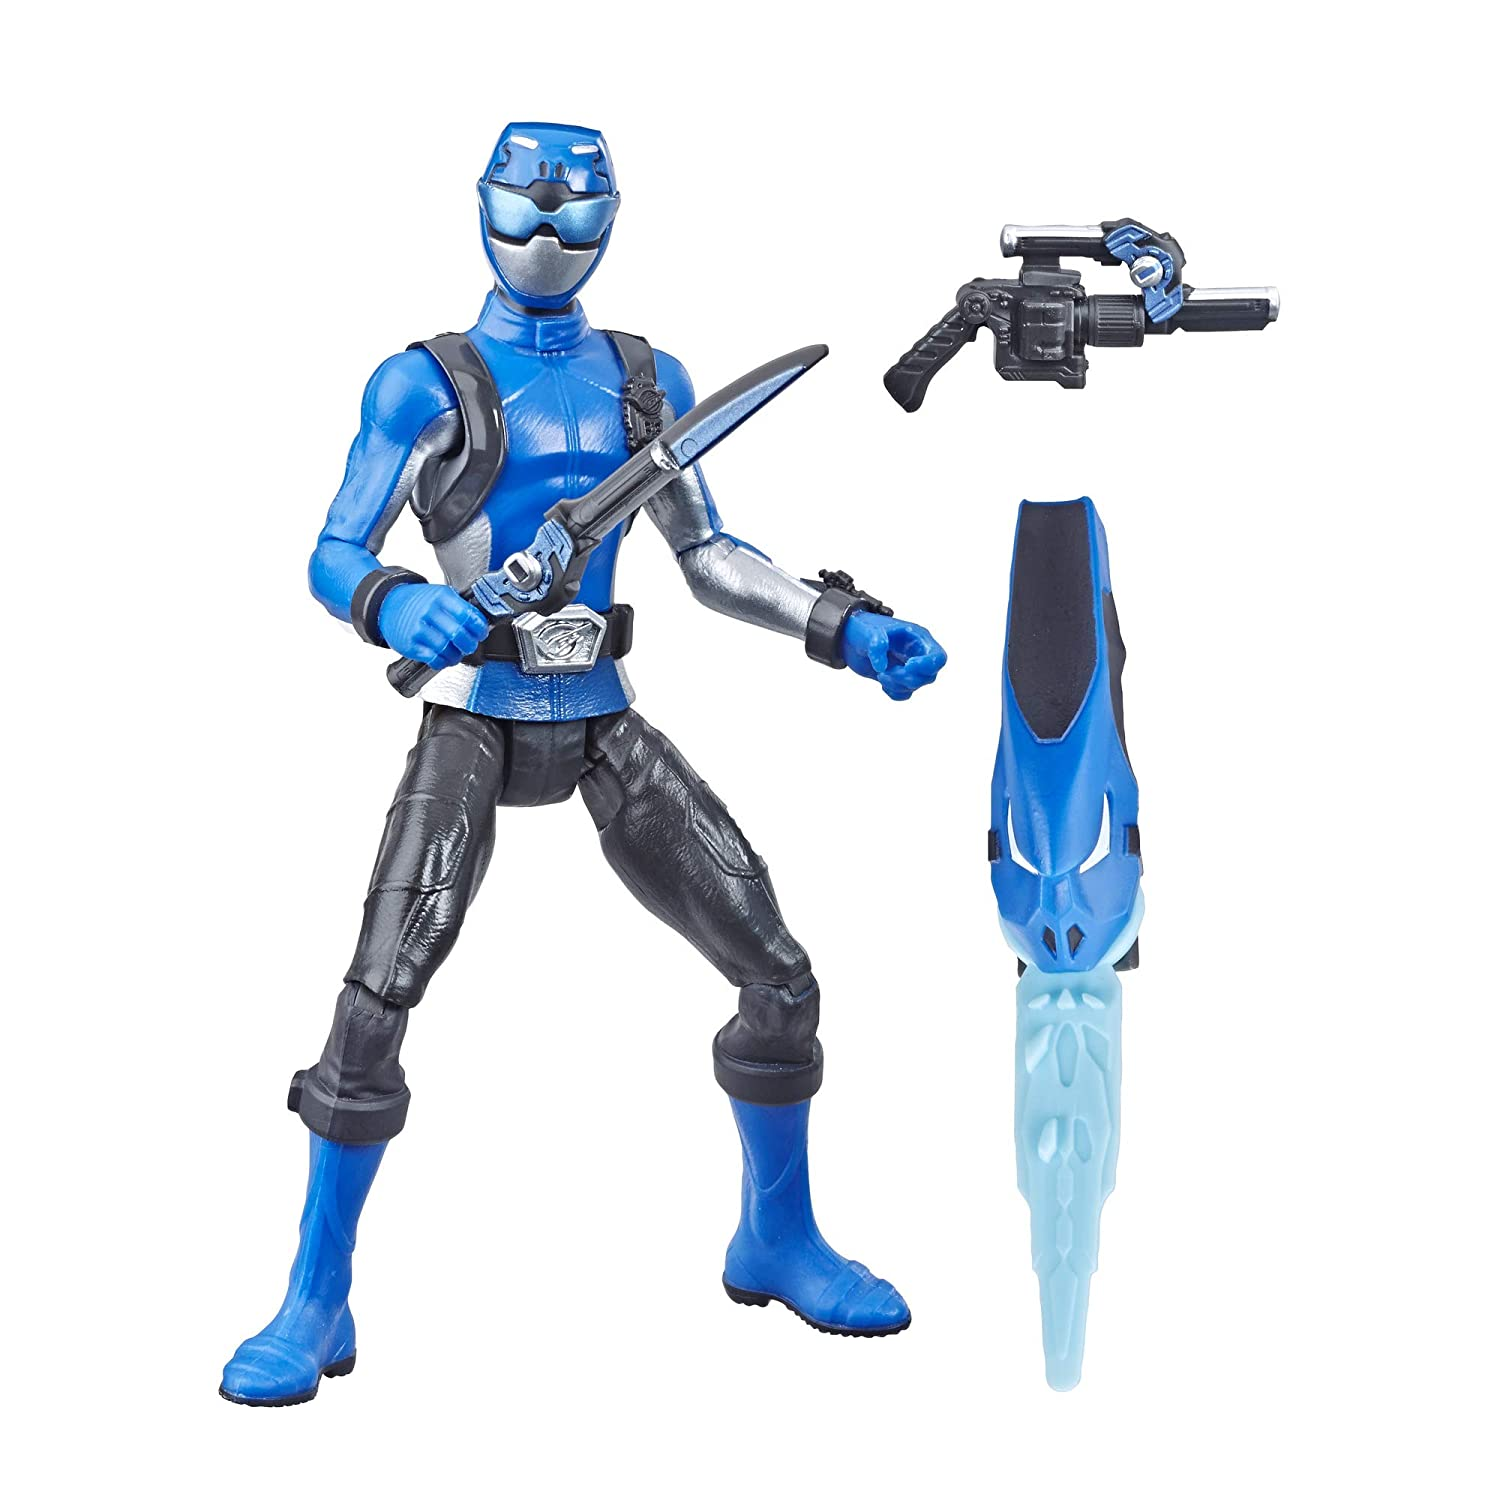 "Power Rangers Hasbro Beast Morphers Blue Ranger 6"" Action Figure Toy Inspired by The TV Show"